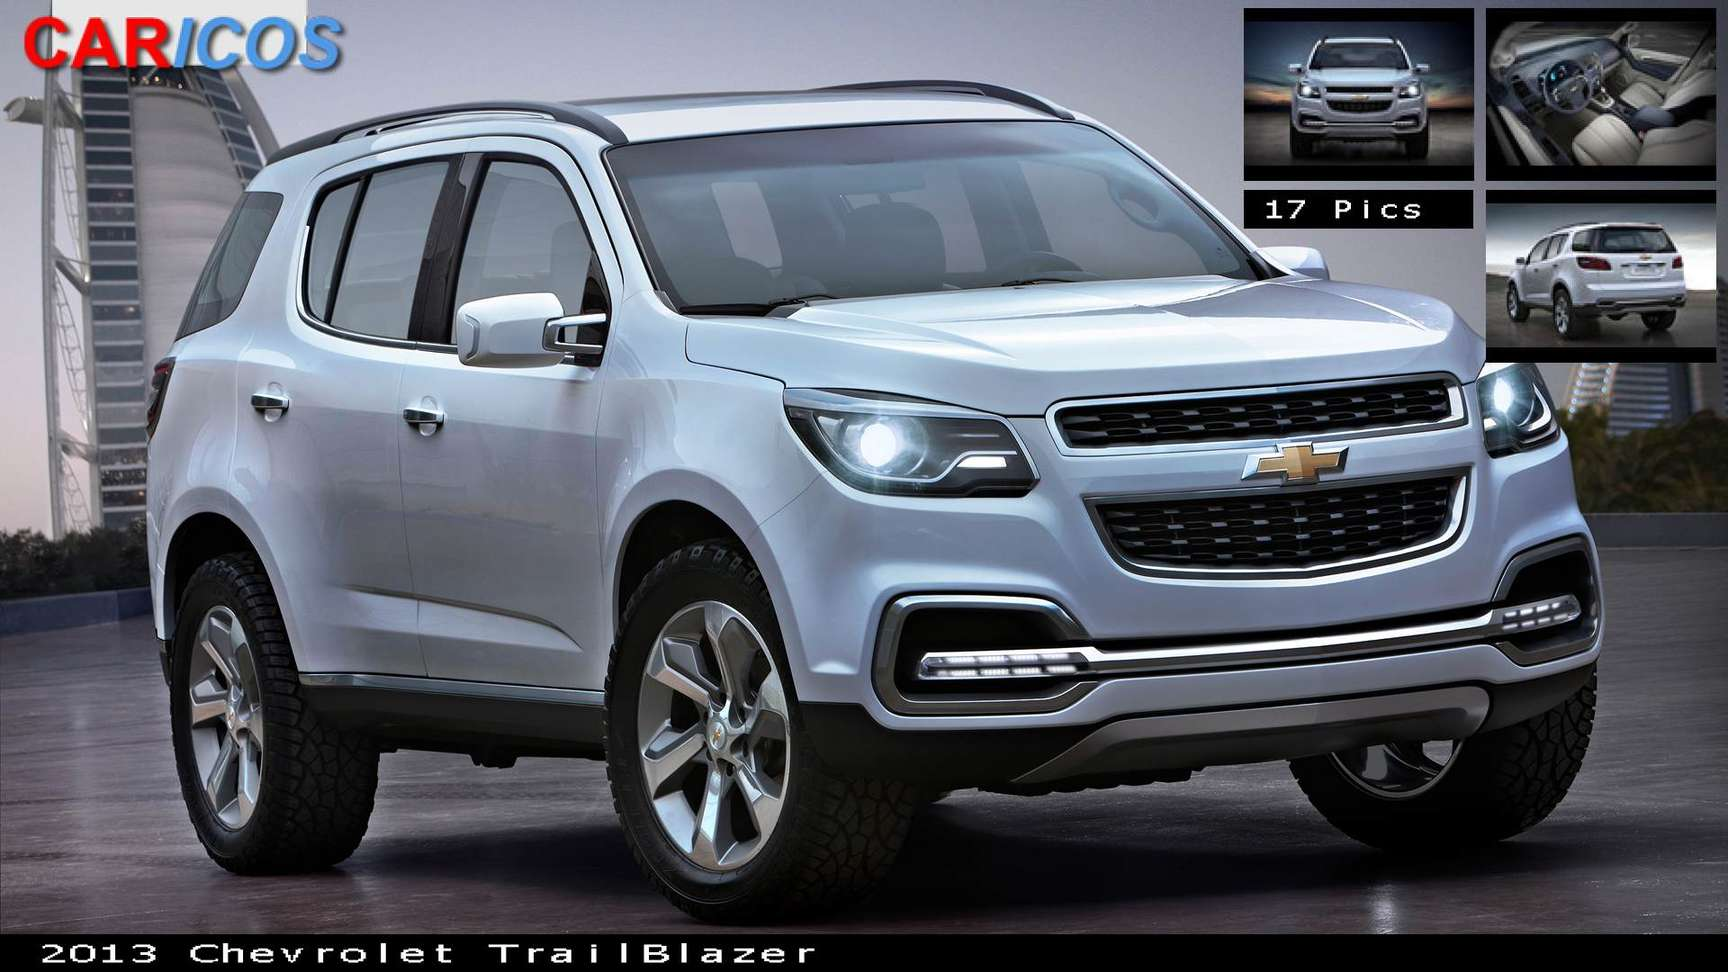 Chevrolet TrailBlazer #9064321